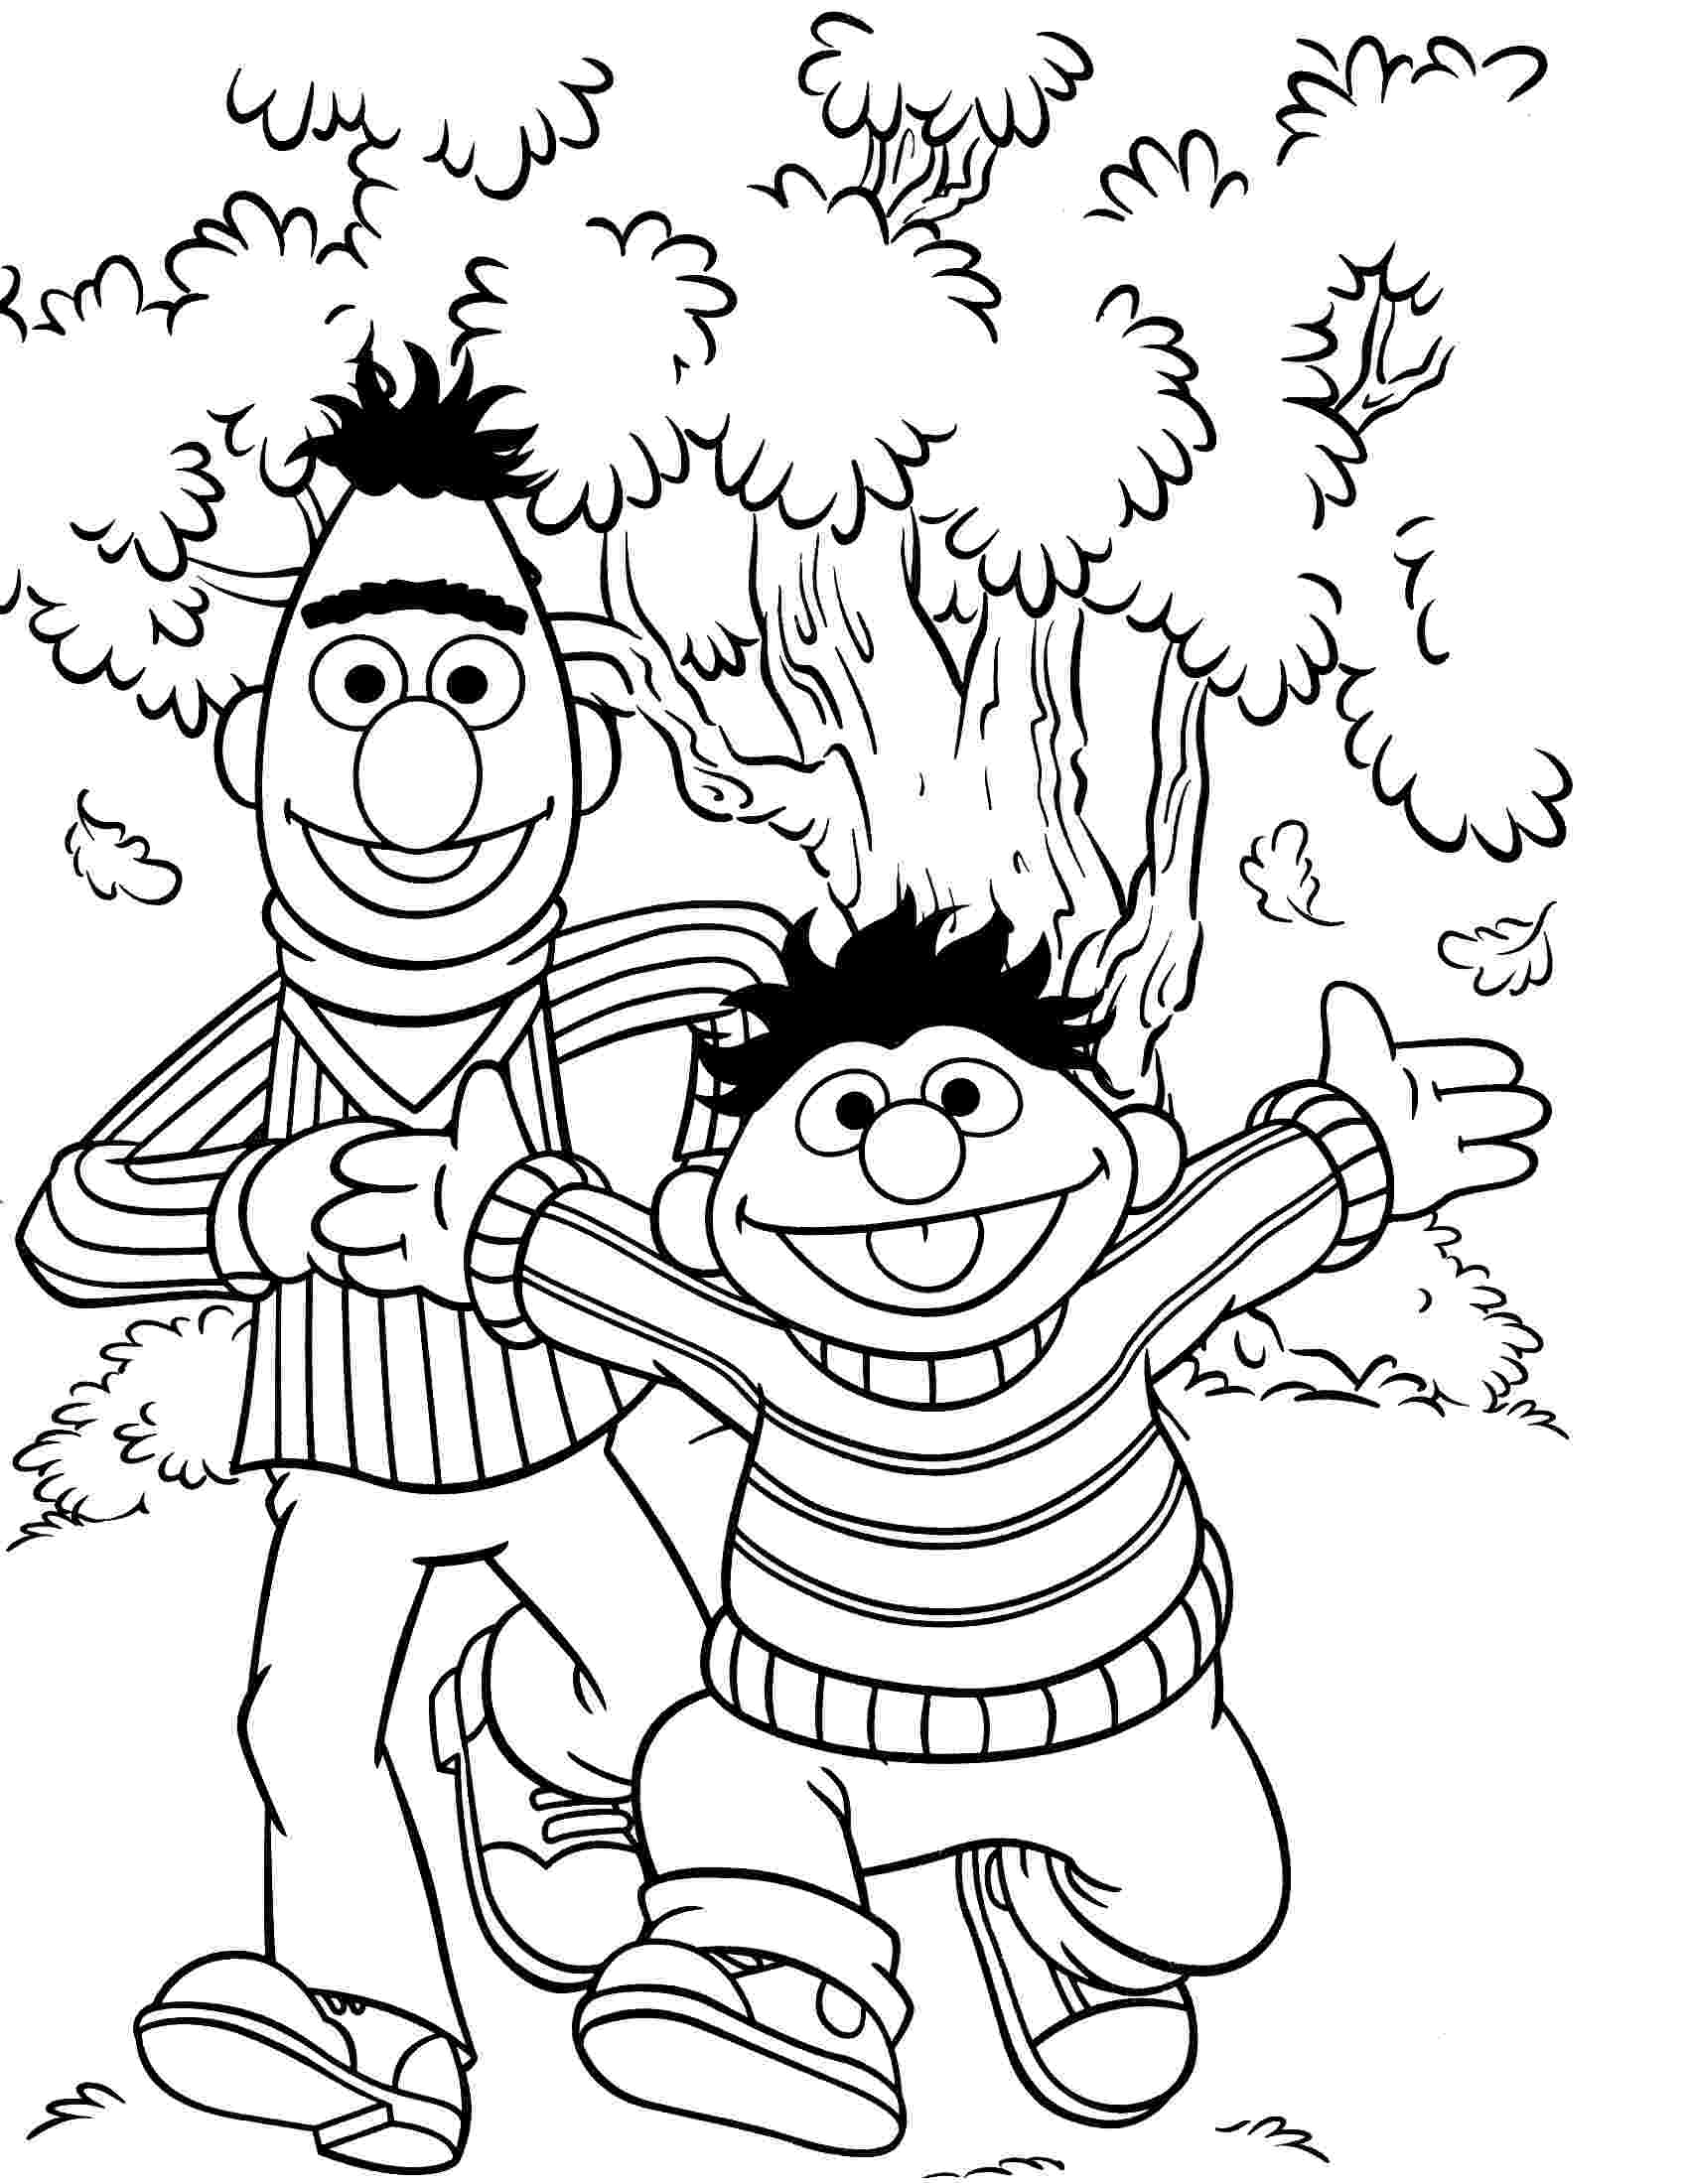 coloring pages of sesame street characters sesame street coloring pages getcoloringpagescom characters pages of coloring street sesame